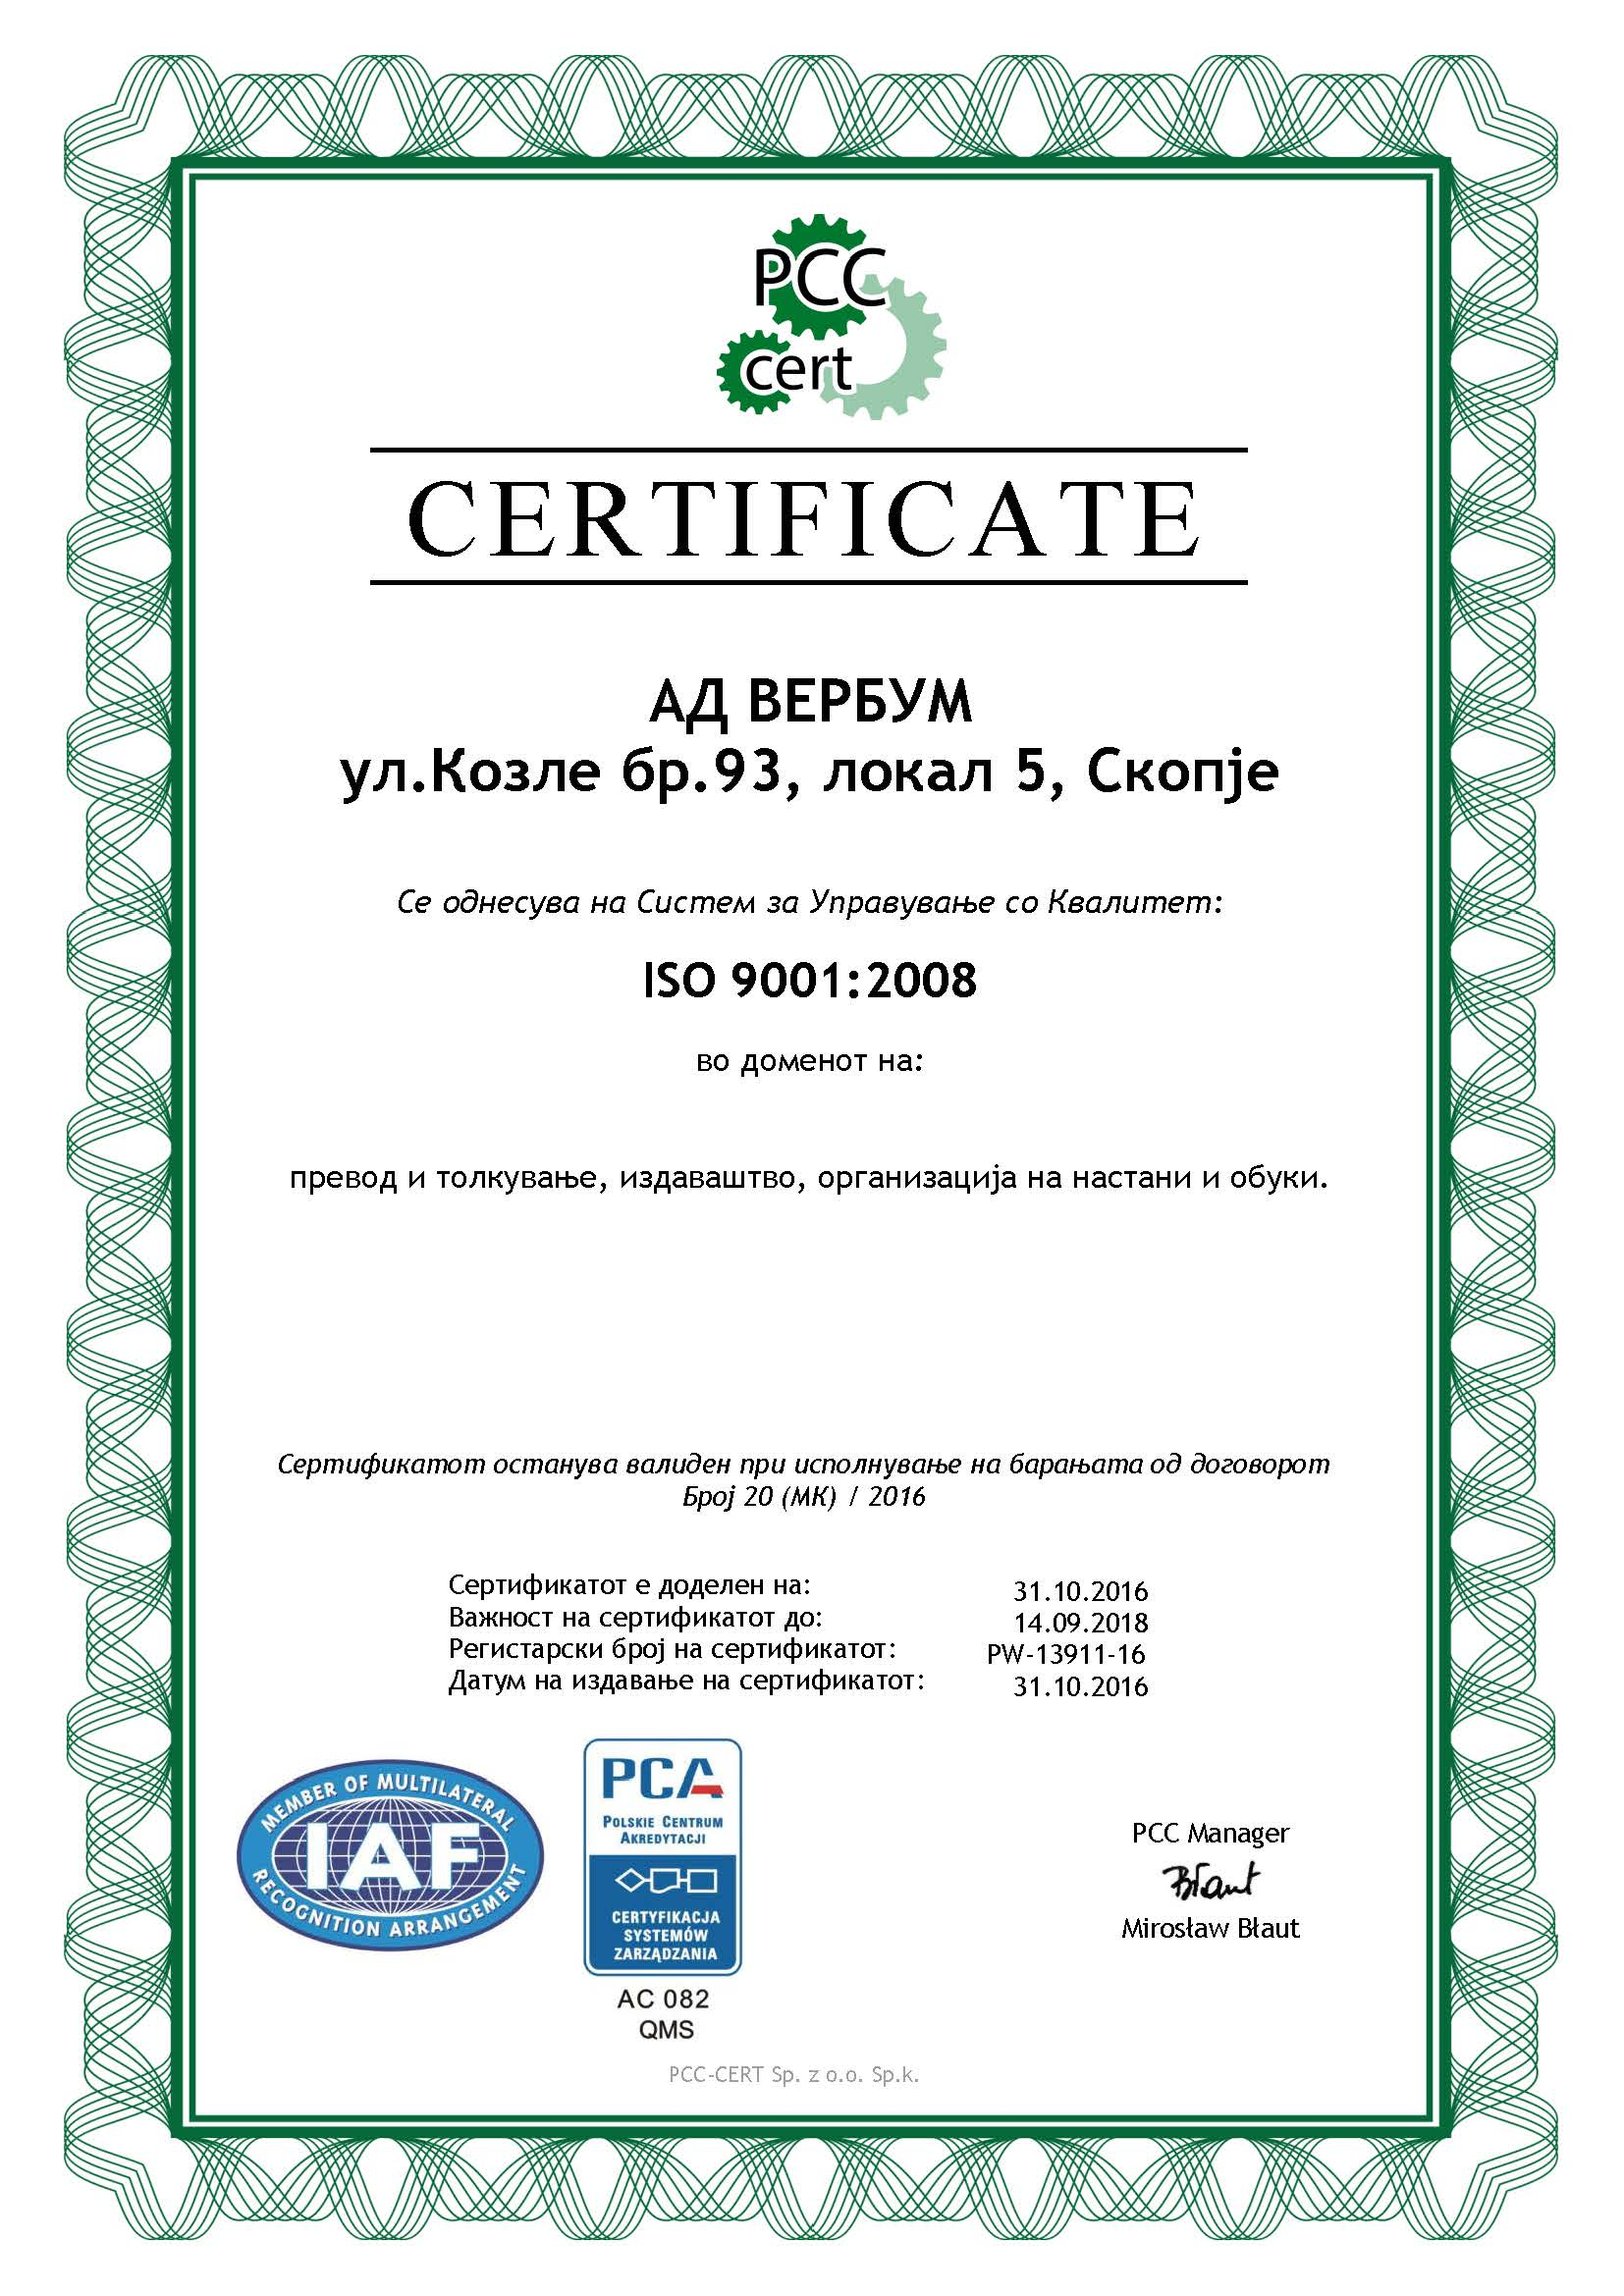 ISO 9001:2008 Sertificate- Adverbum